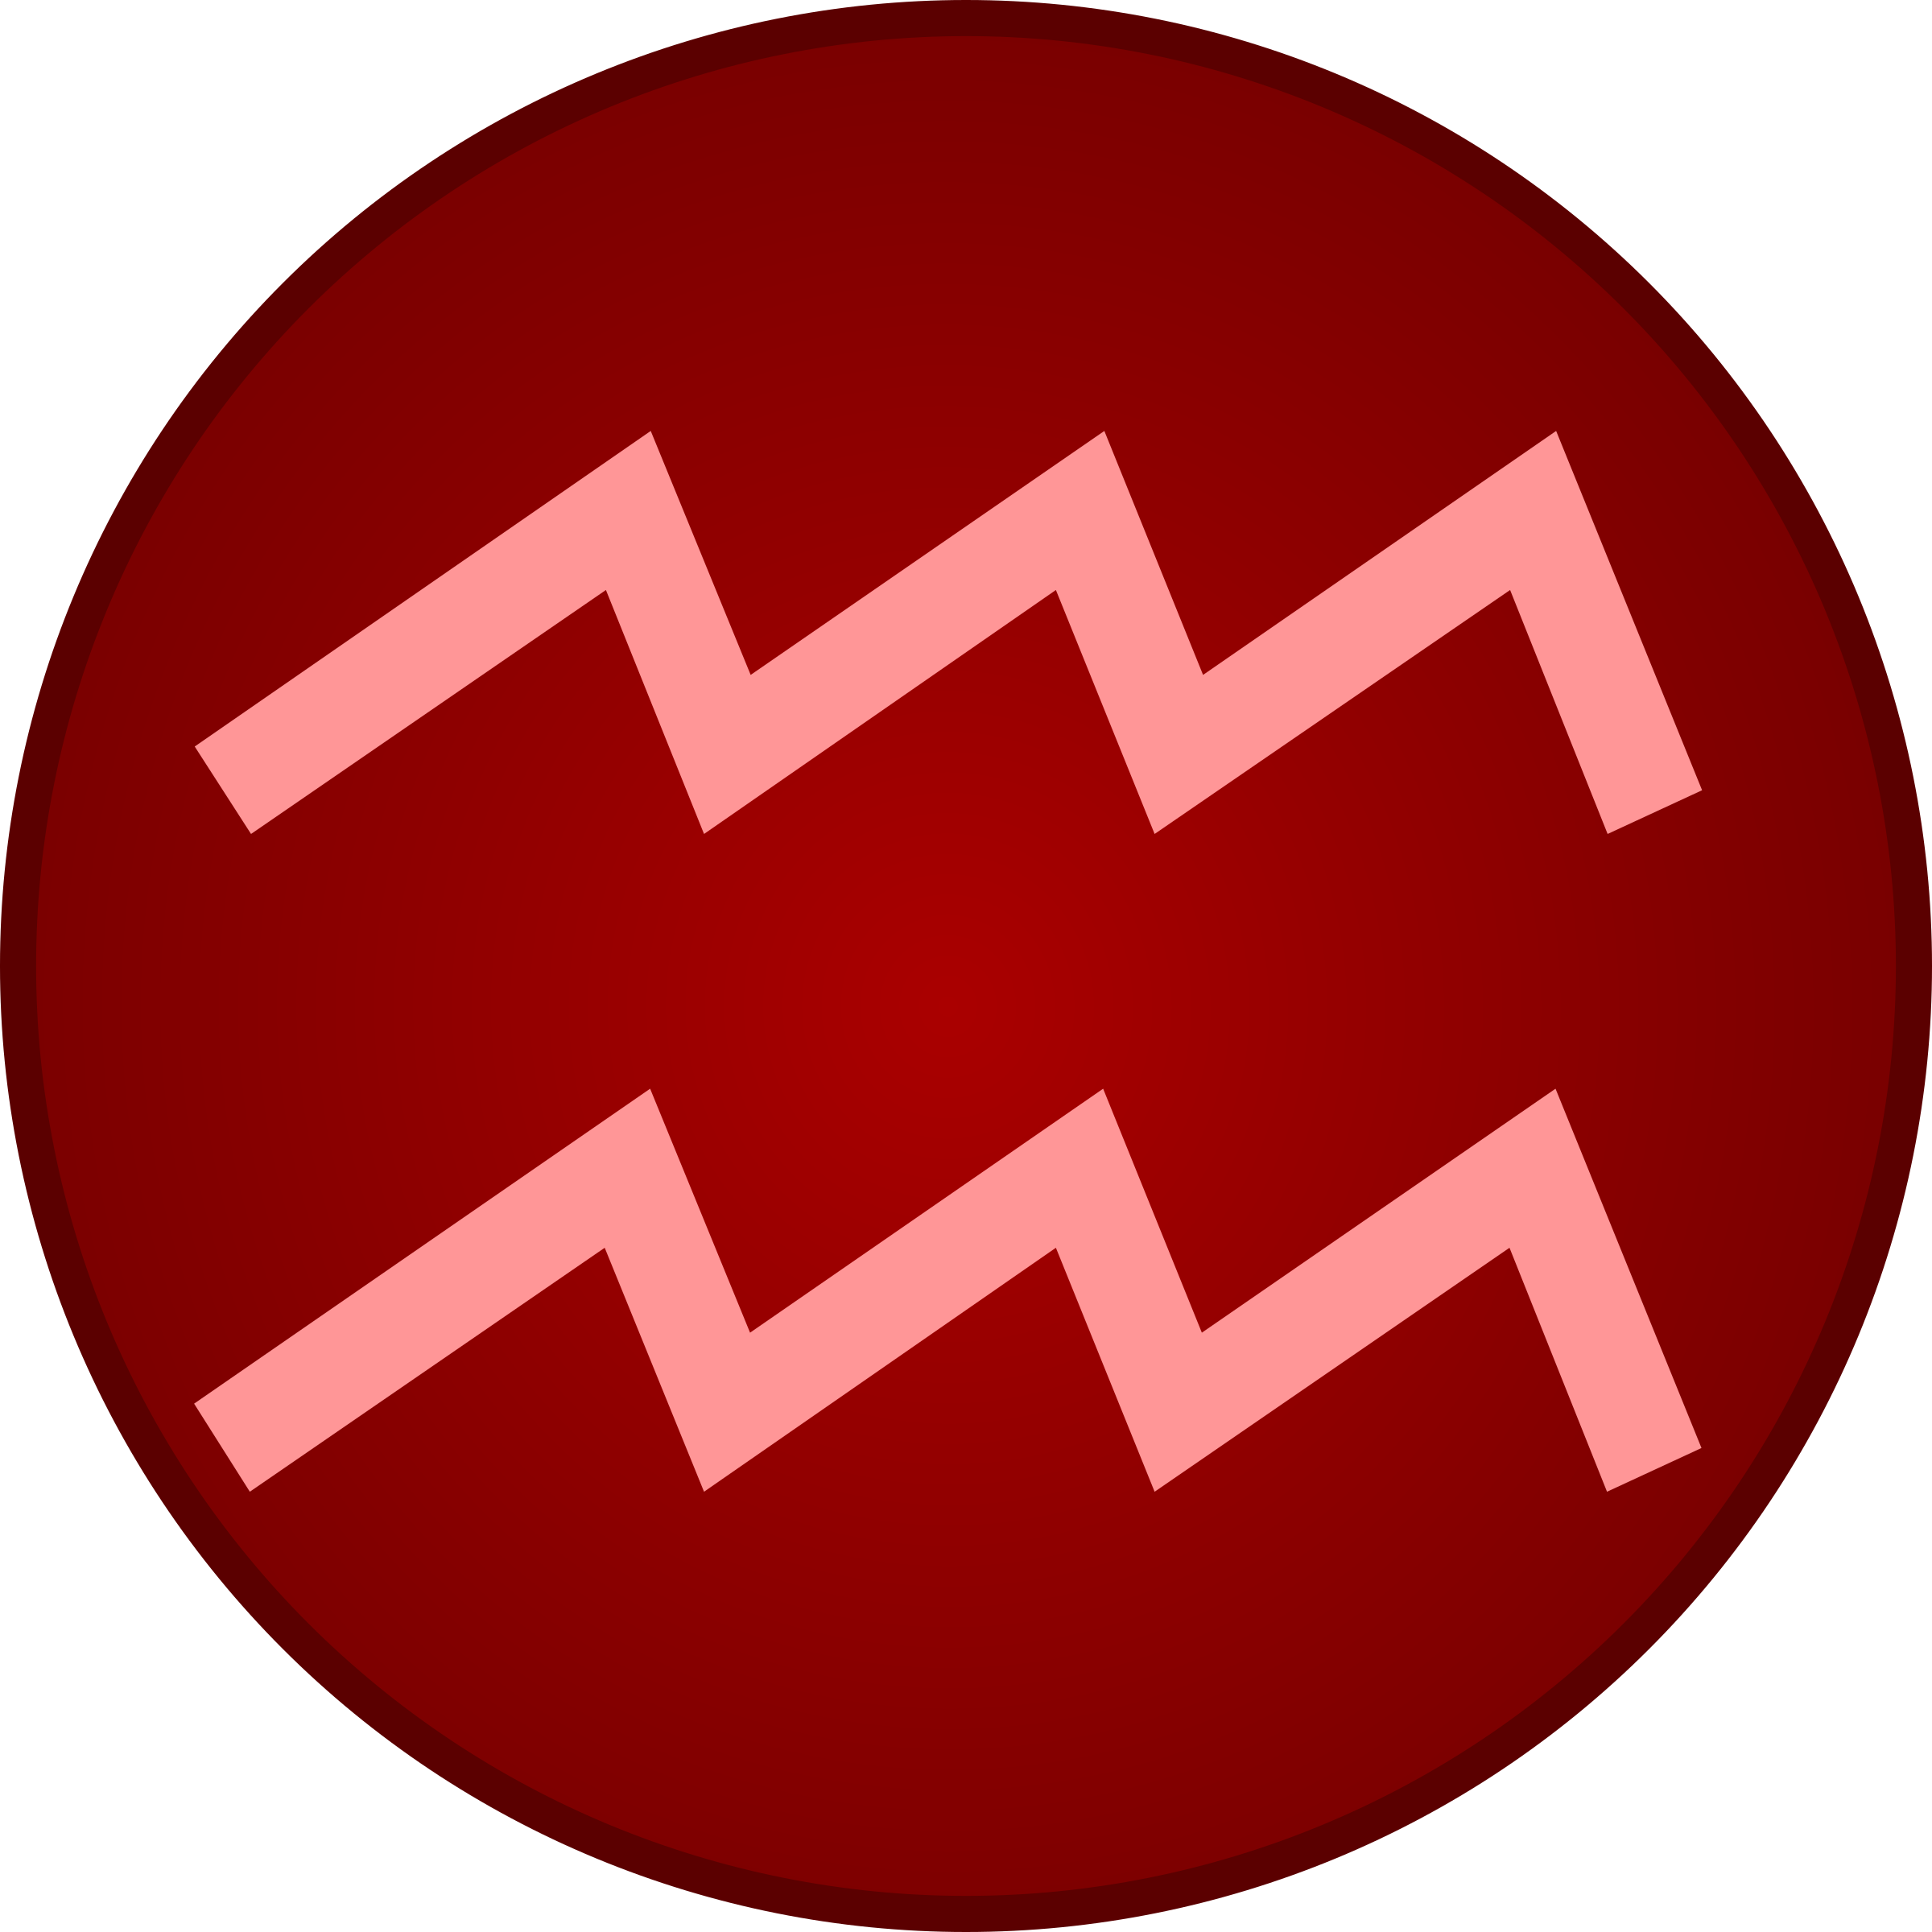 clipart aquarius symbol